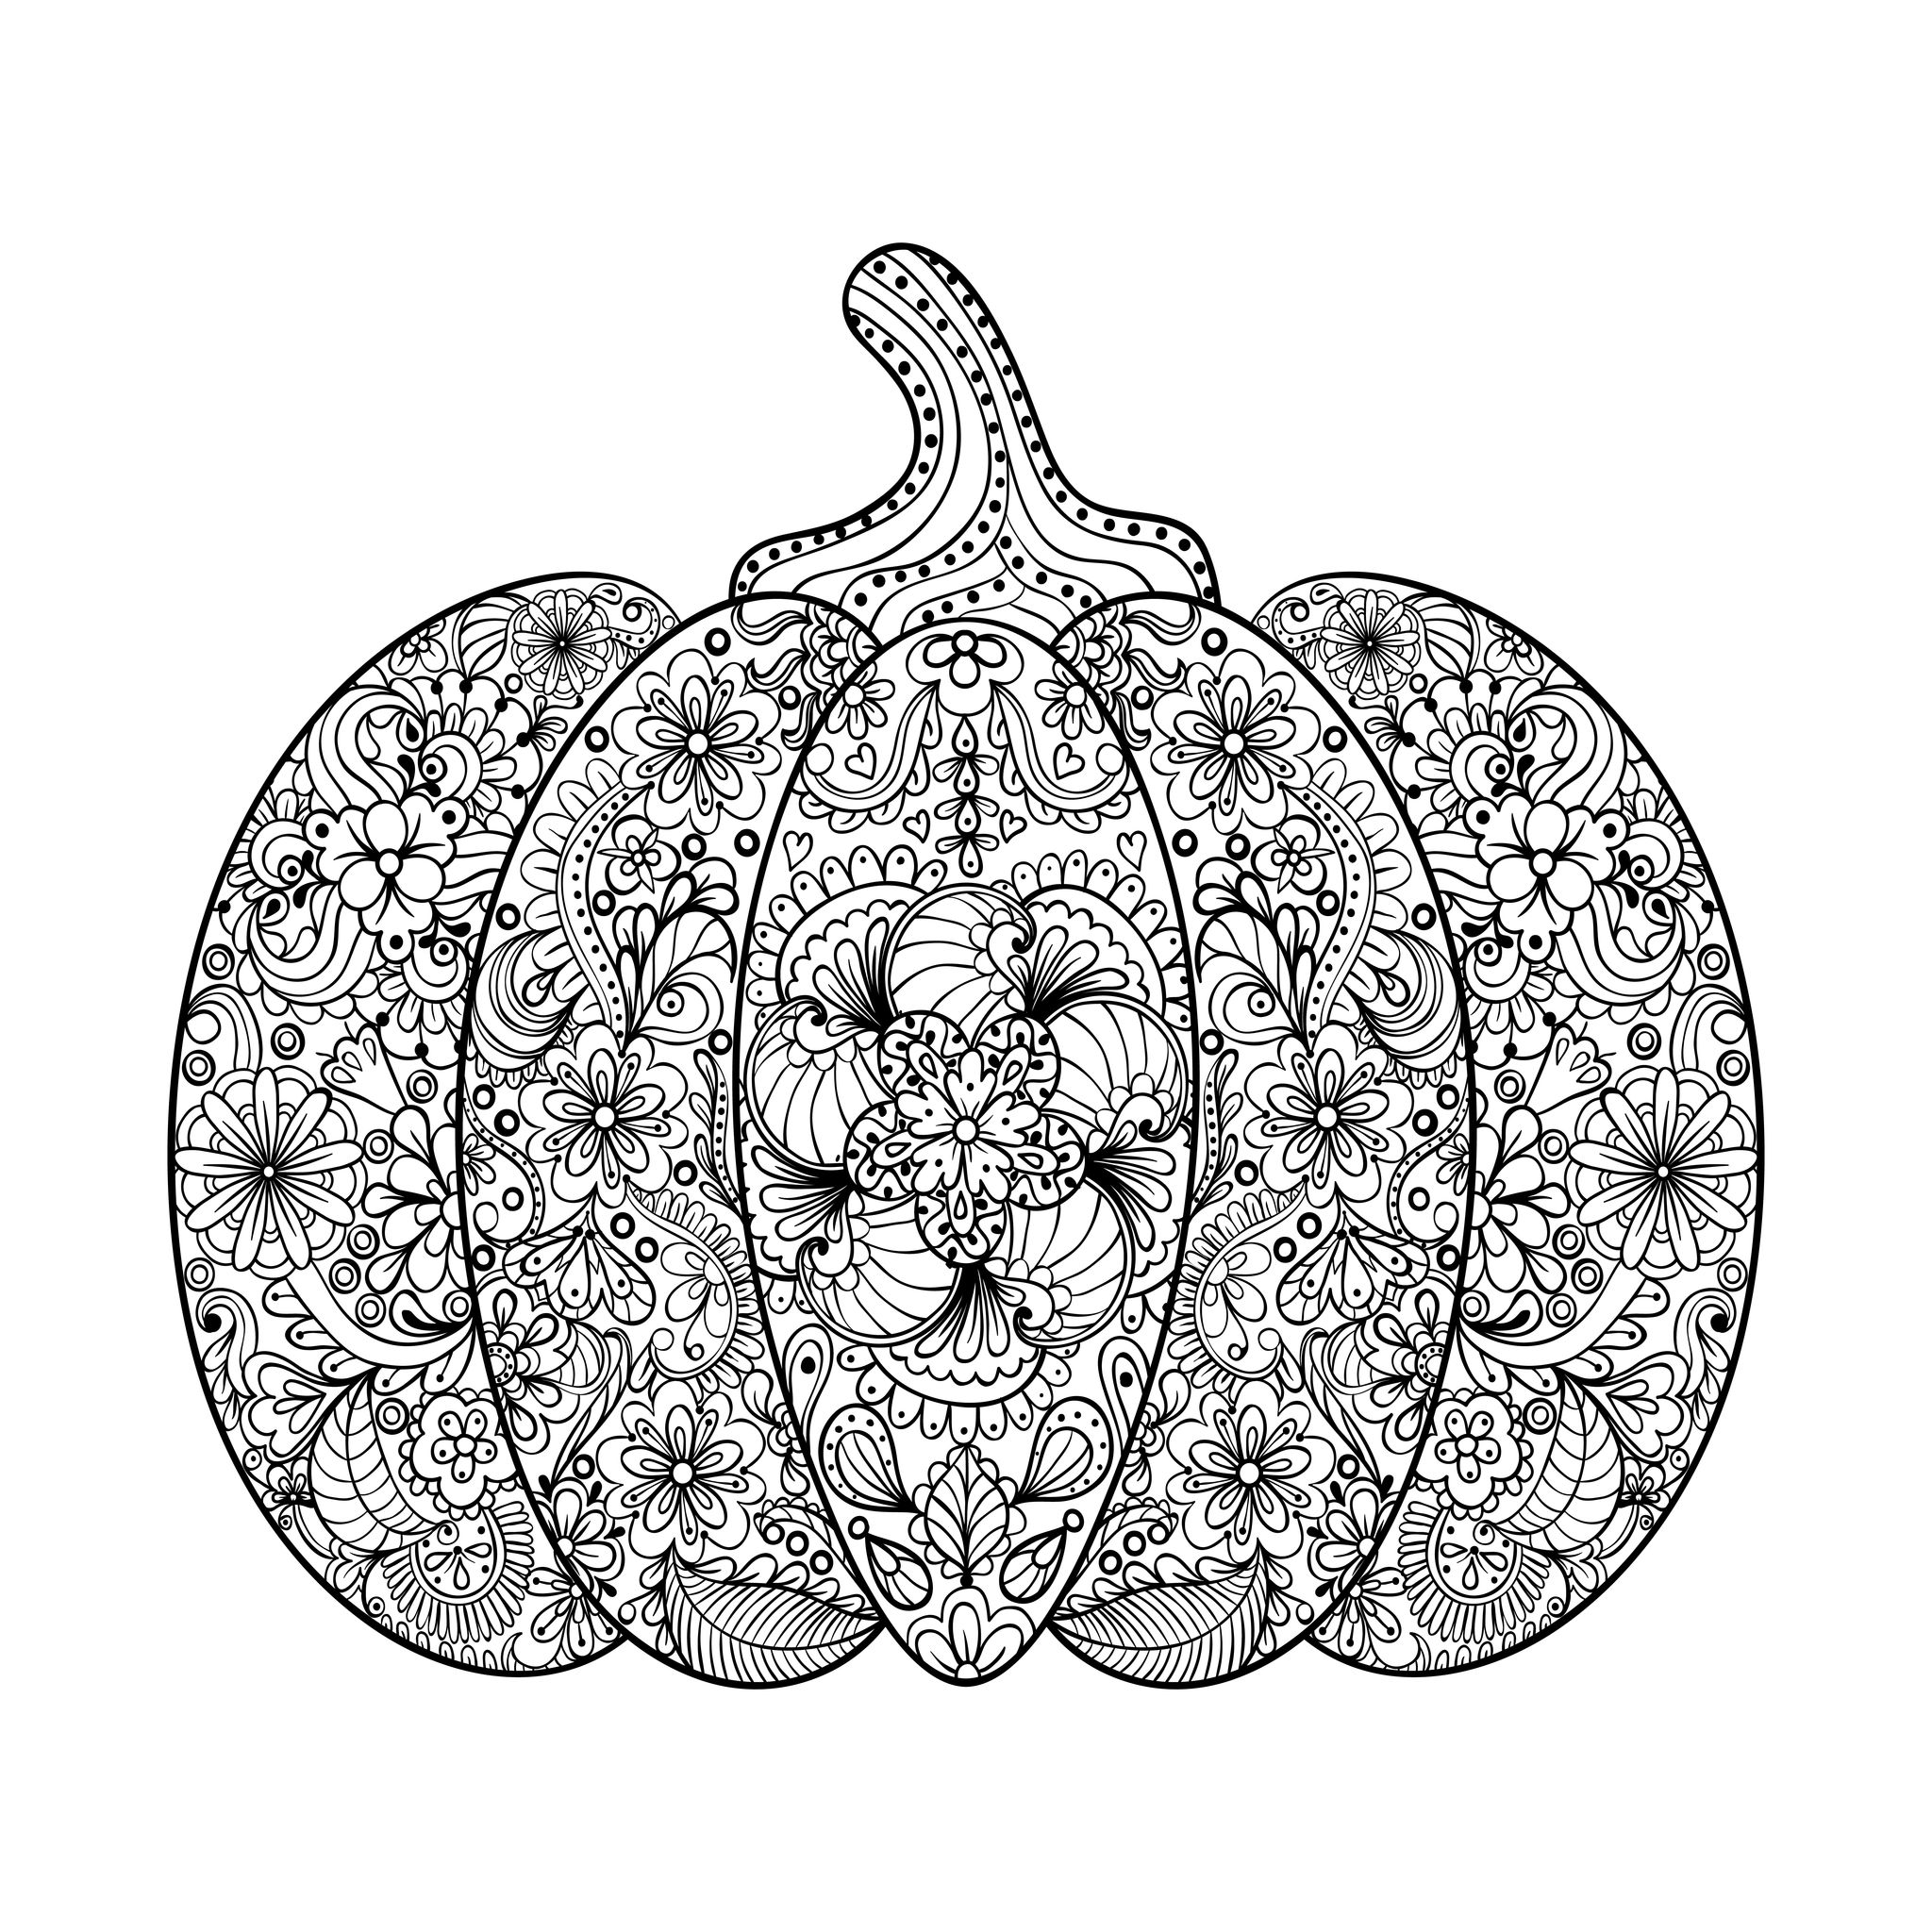 Coloring pages for halloween coloring contest - Coloring Halloween Complex Pumpkin With Flowers And Leaves By Ipanki